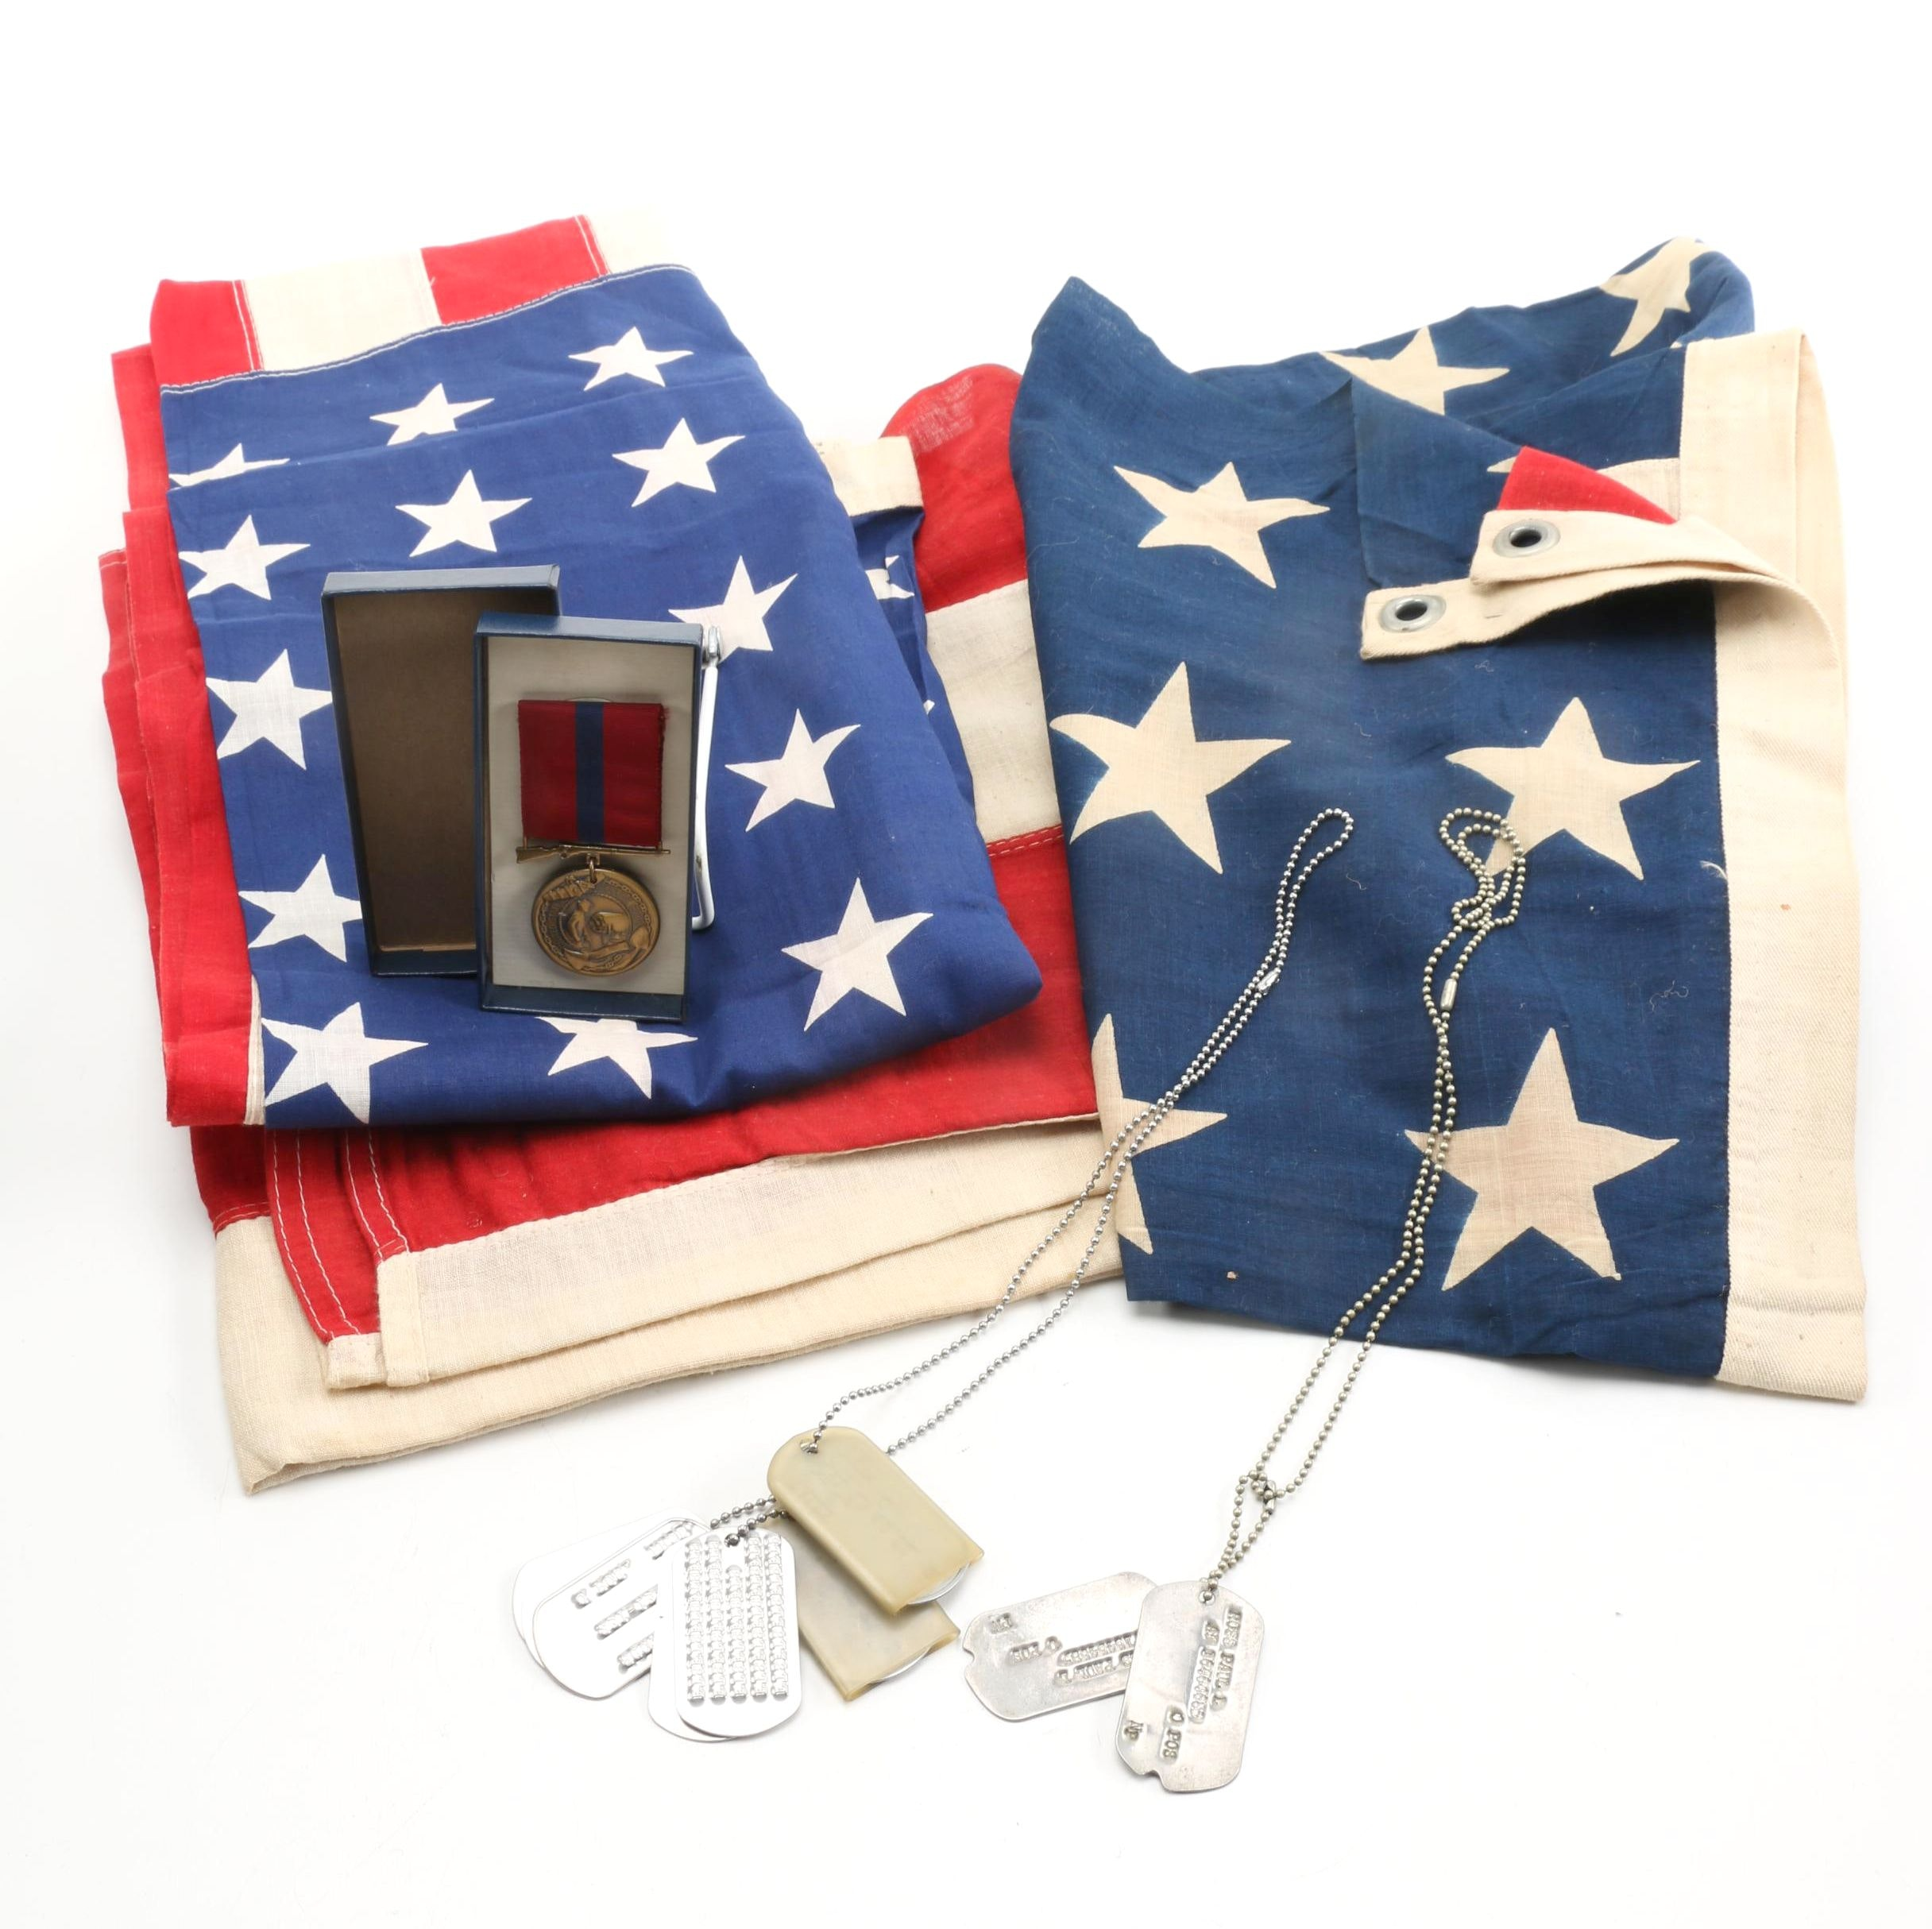 Vintage American Flags and Military Items